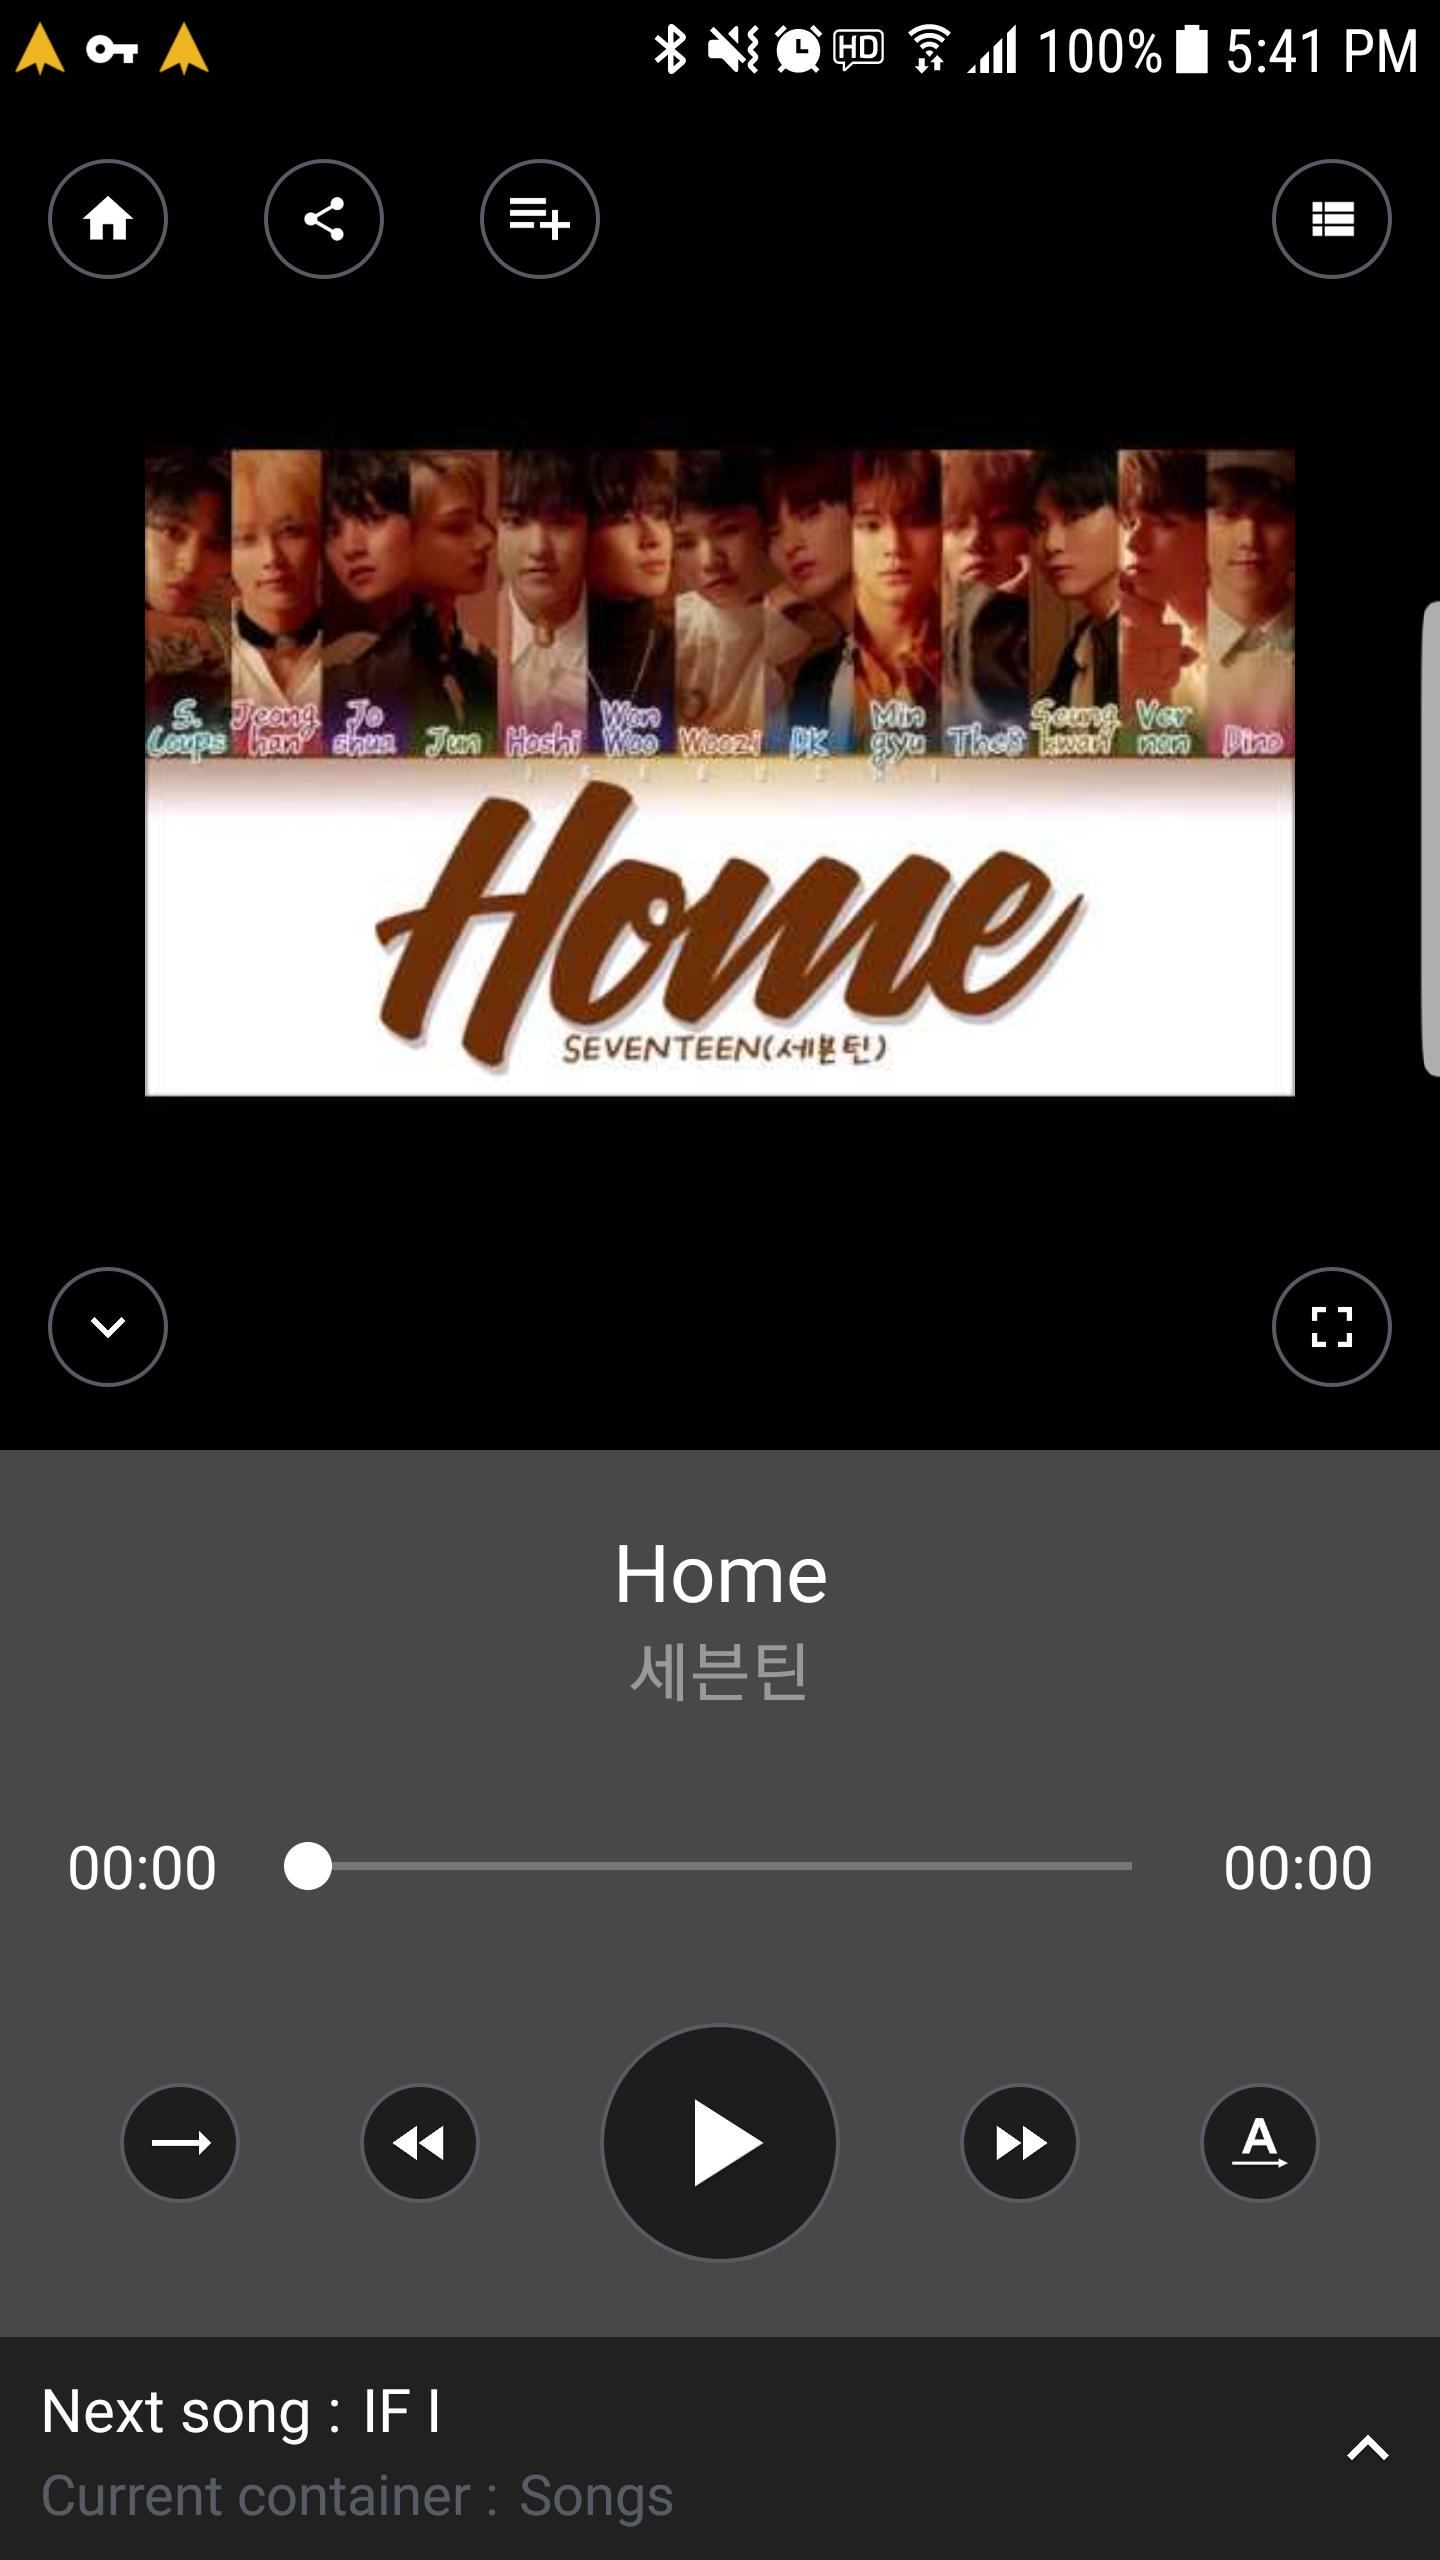 All That SEVENTEEN(songs, albums, MVs, videos) for Android